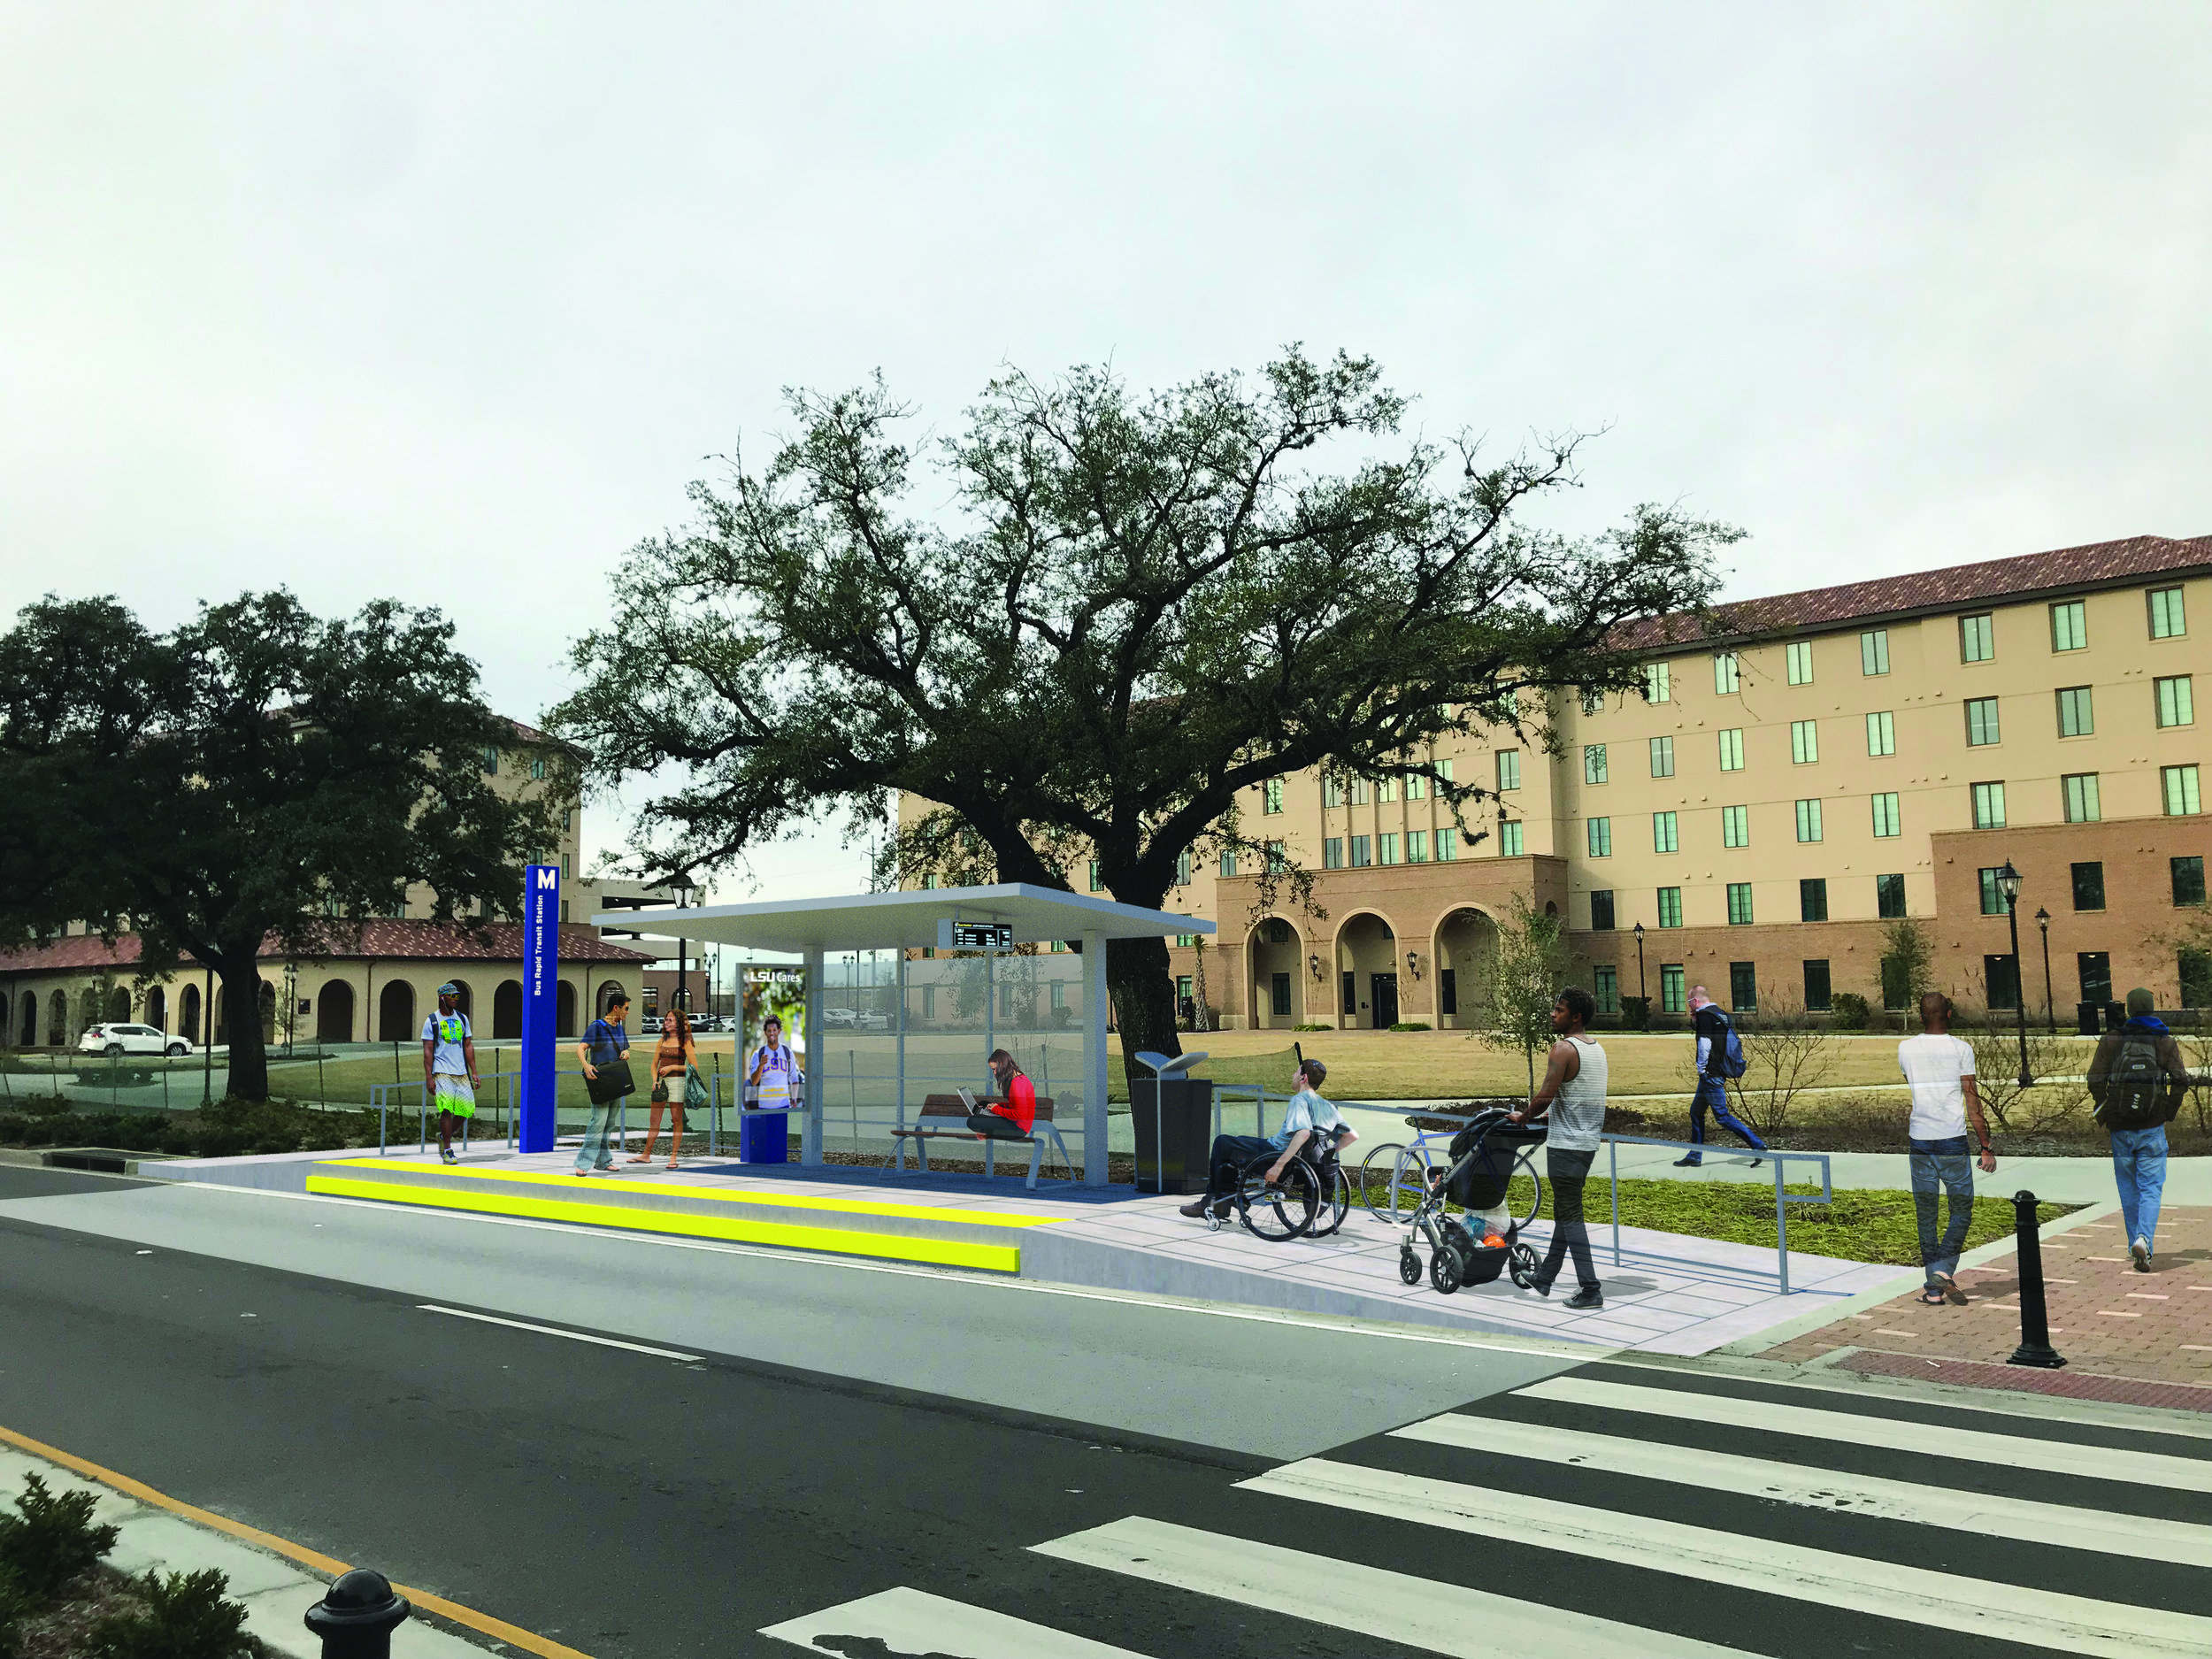 A bus rapid transit station at LSU's Nicholson Gateway development, as envisioned by consulting firm HNTB.